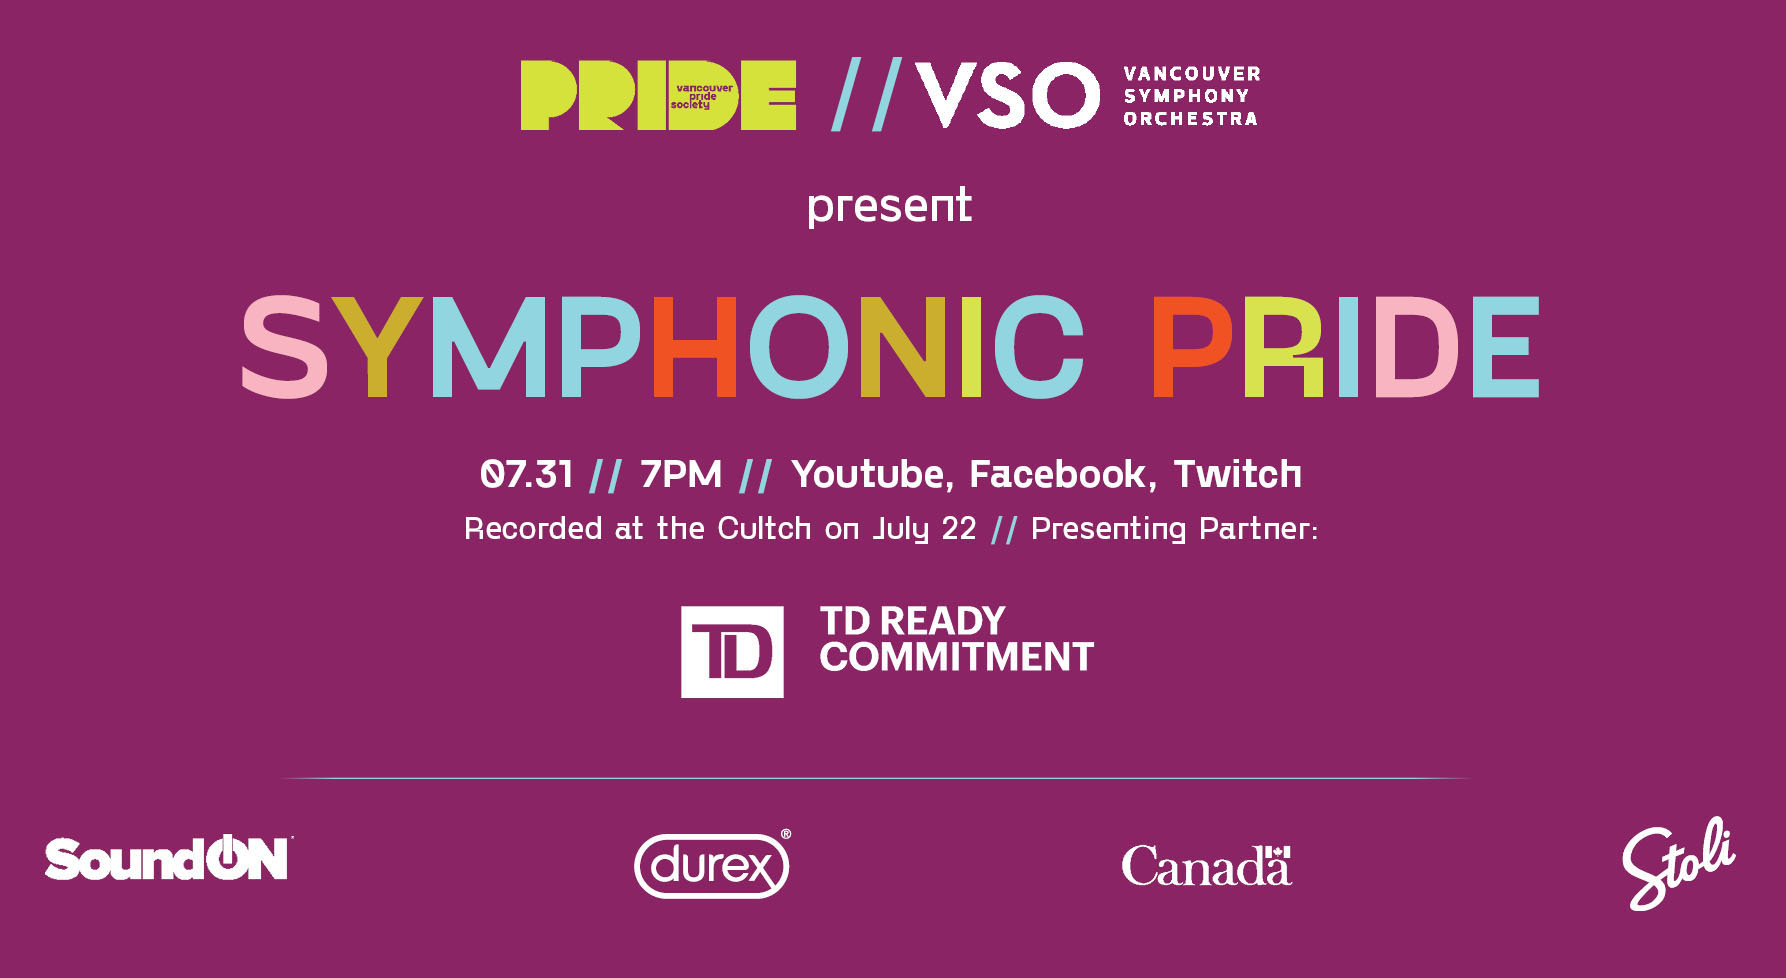 """A dark purple background with the PRIDE logo // Vancouver Symphony Orchestra Logo on the top. Text below reads """"present"""" in white text followed by """"SYMPHONIC PRIDE"""" in multicoloured letters. Below, white text reads """"07.31//7:30pm//Youtube, Facebook, Twitch."""" A white line separates the above from a line of sponsor logos: Durex, TD, Stoli and the Government of Canada."""